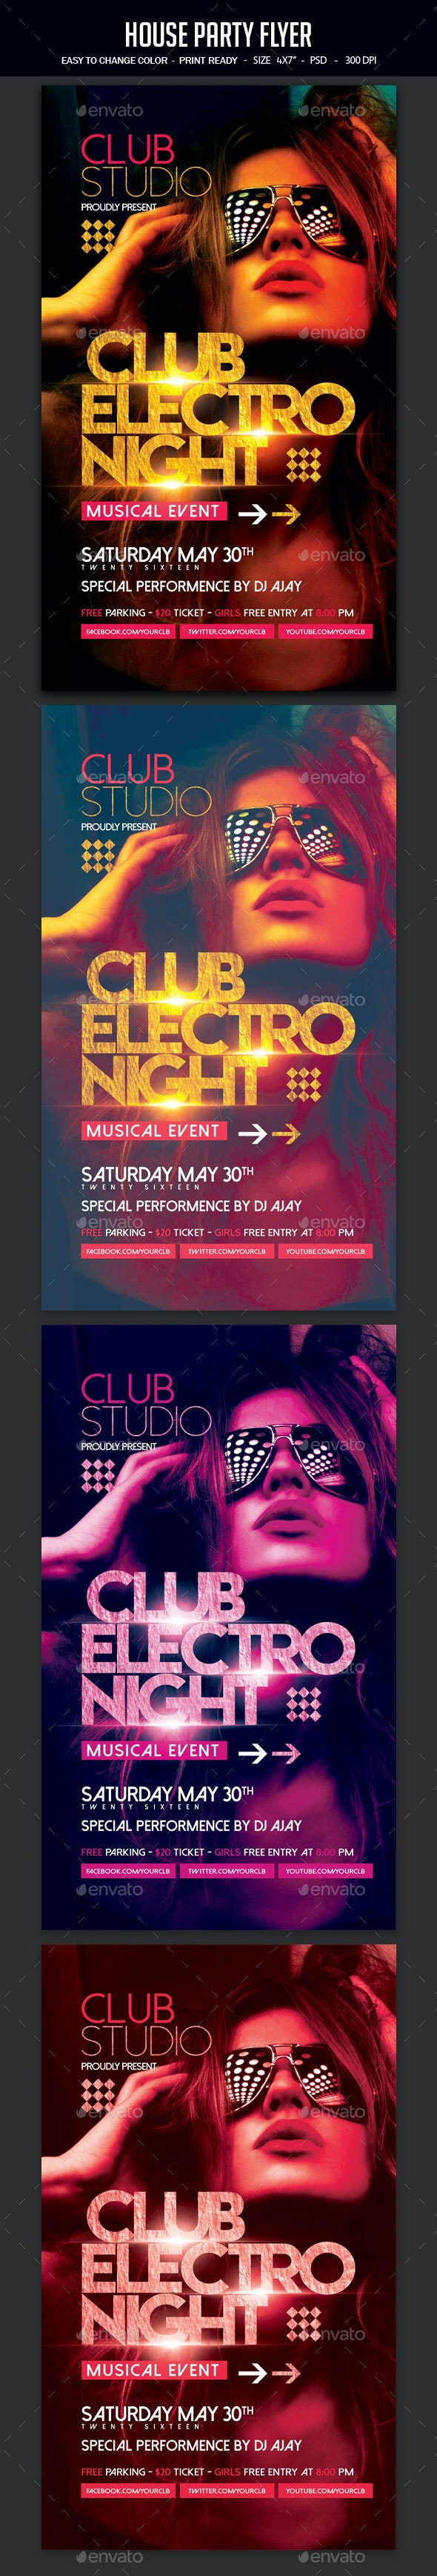 House Party Flyer - Clubs & Parties Events